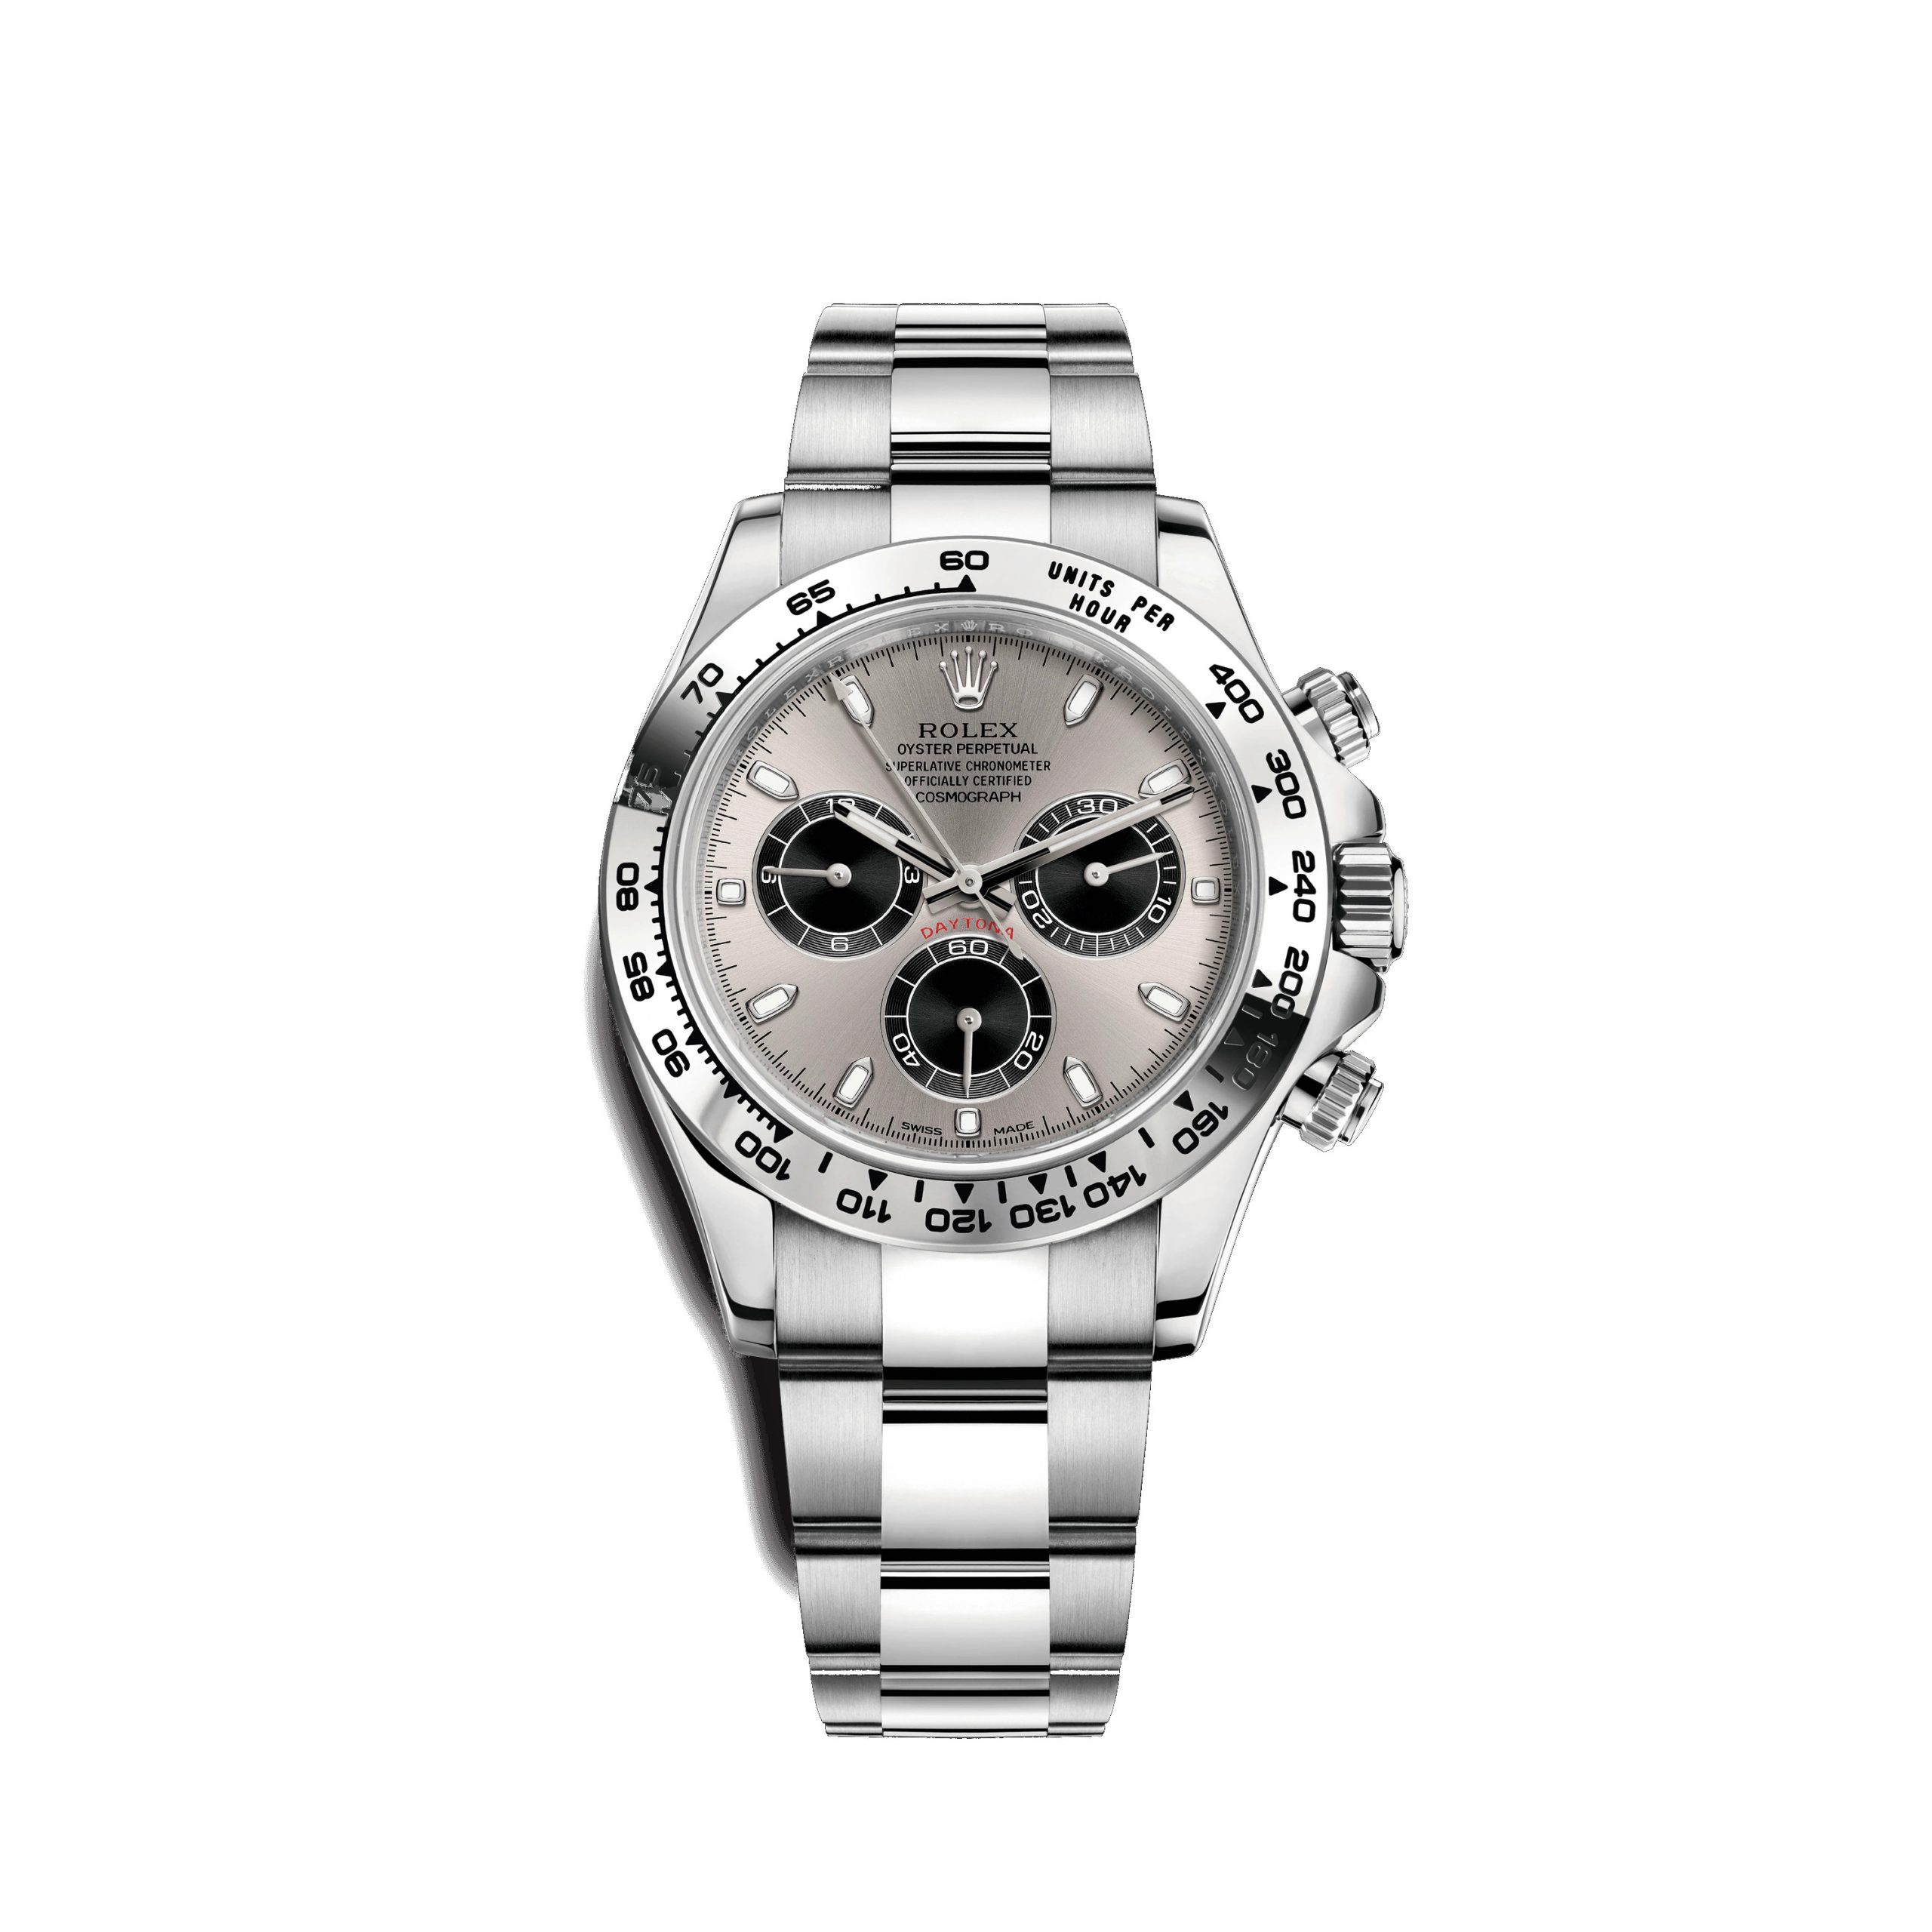 Rolex White Gold Daytona Model 116509 Silver & Black Panda Dial